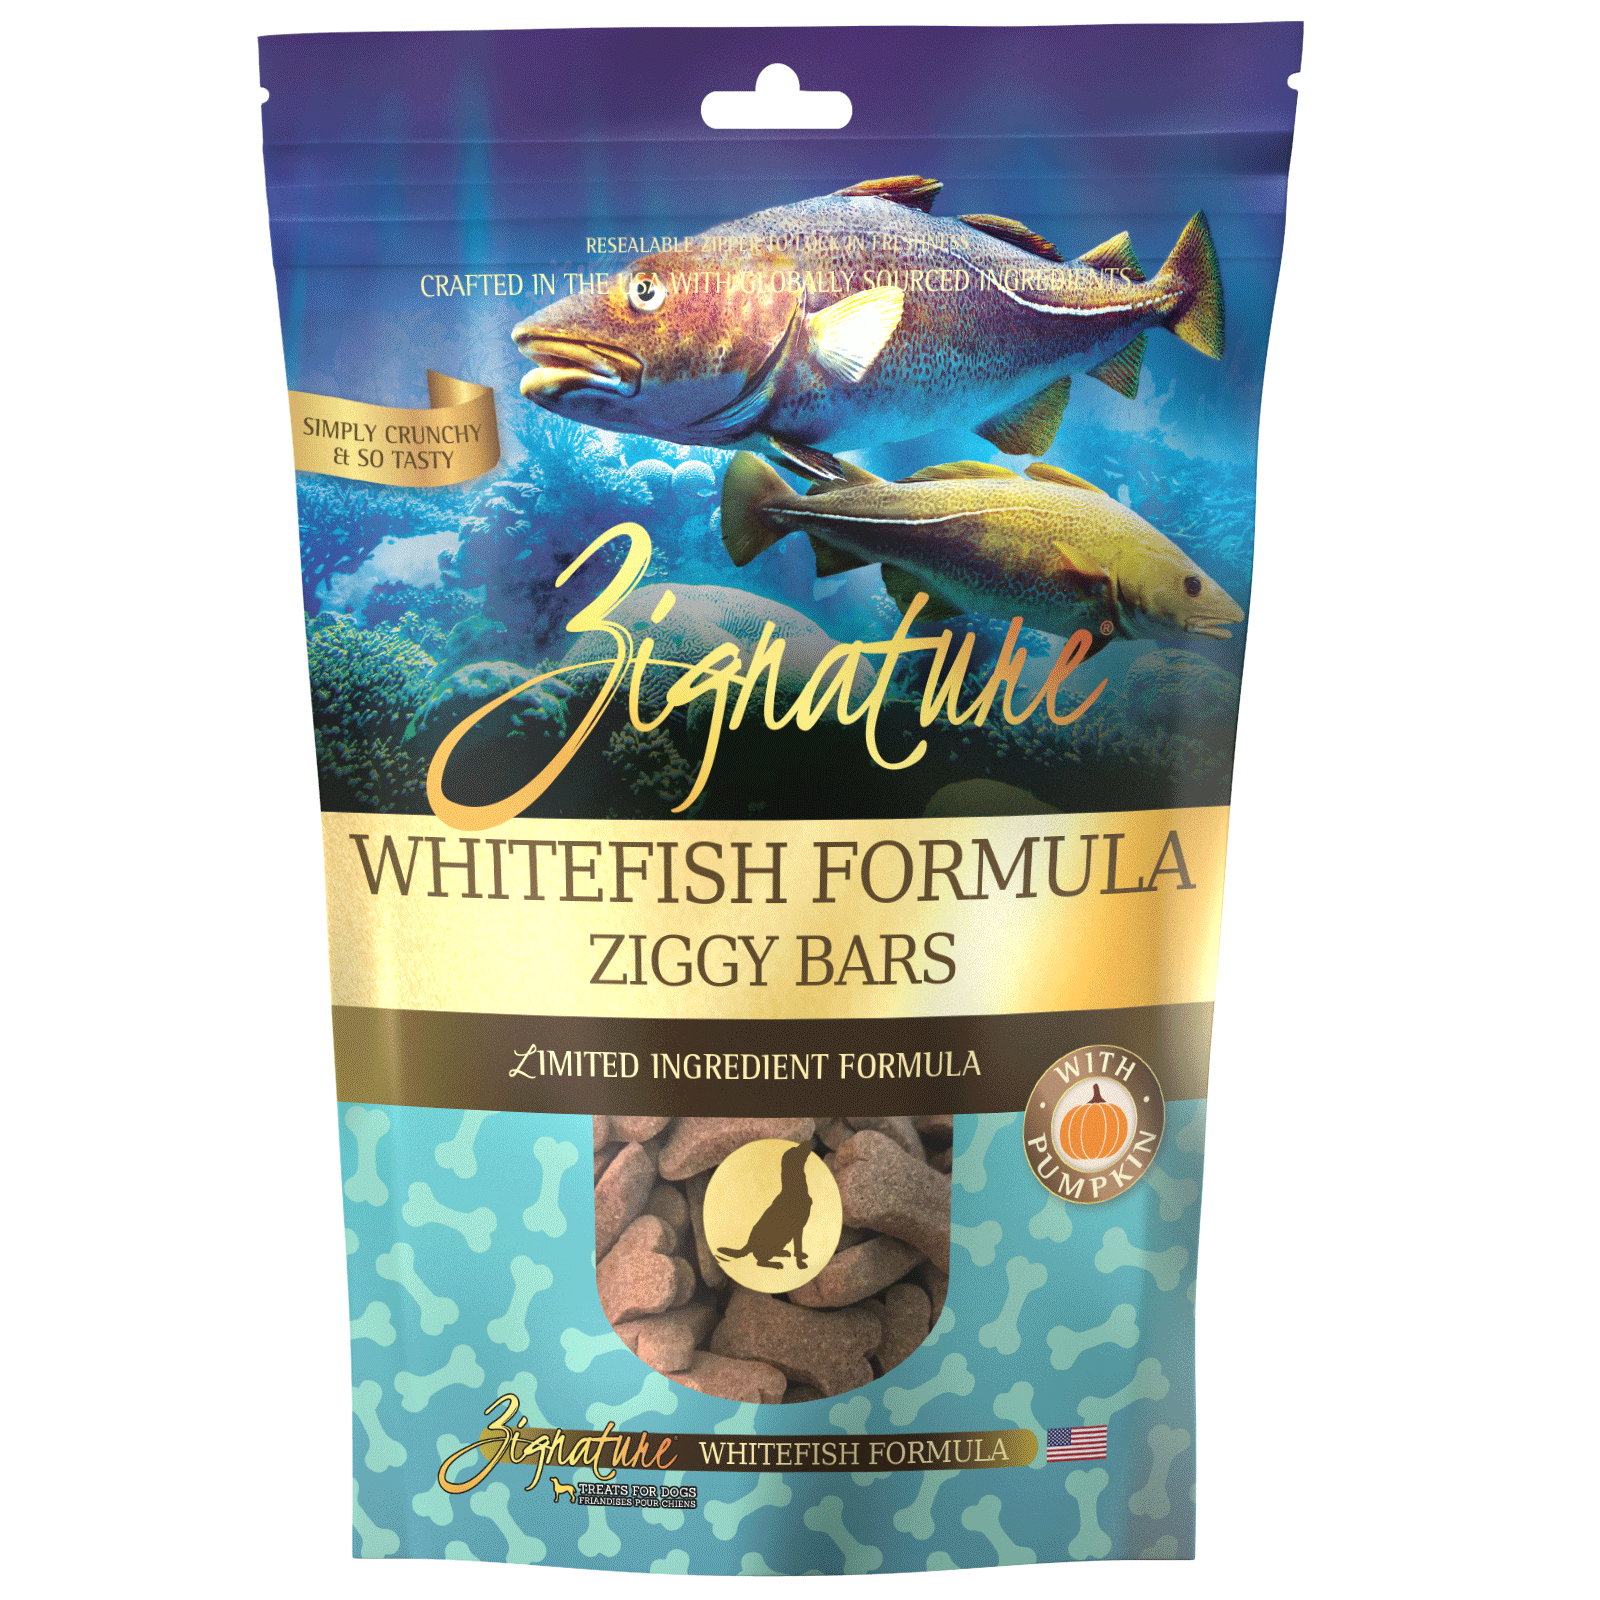 Zignature Whitefish Formula Biscuit Treats for Dogs